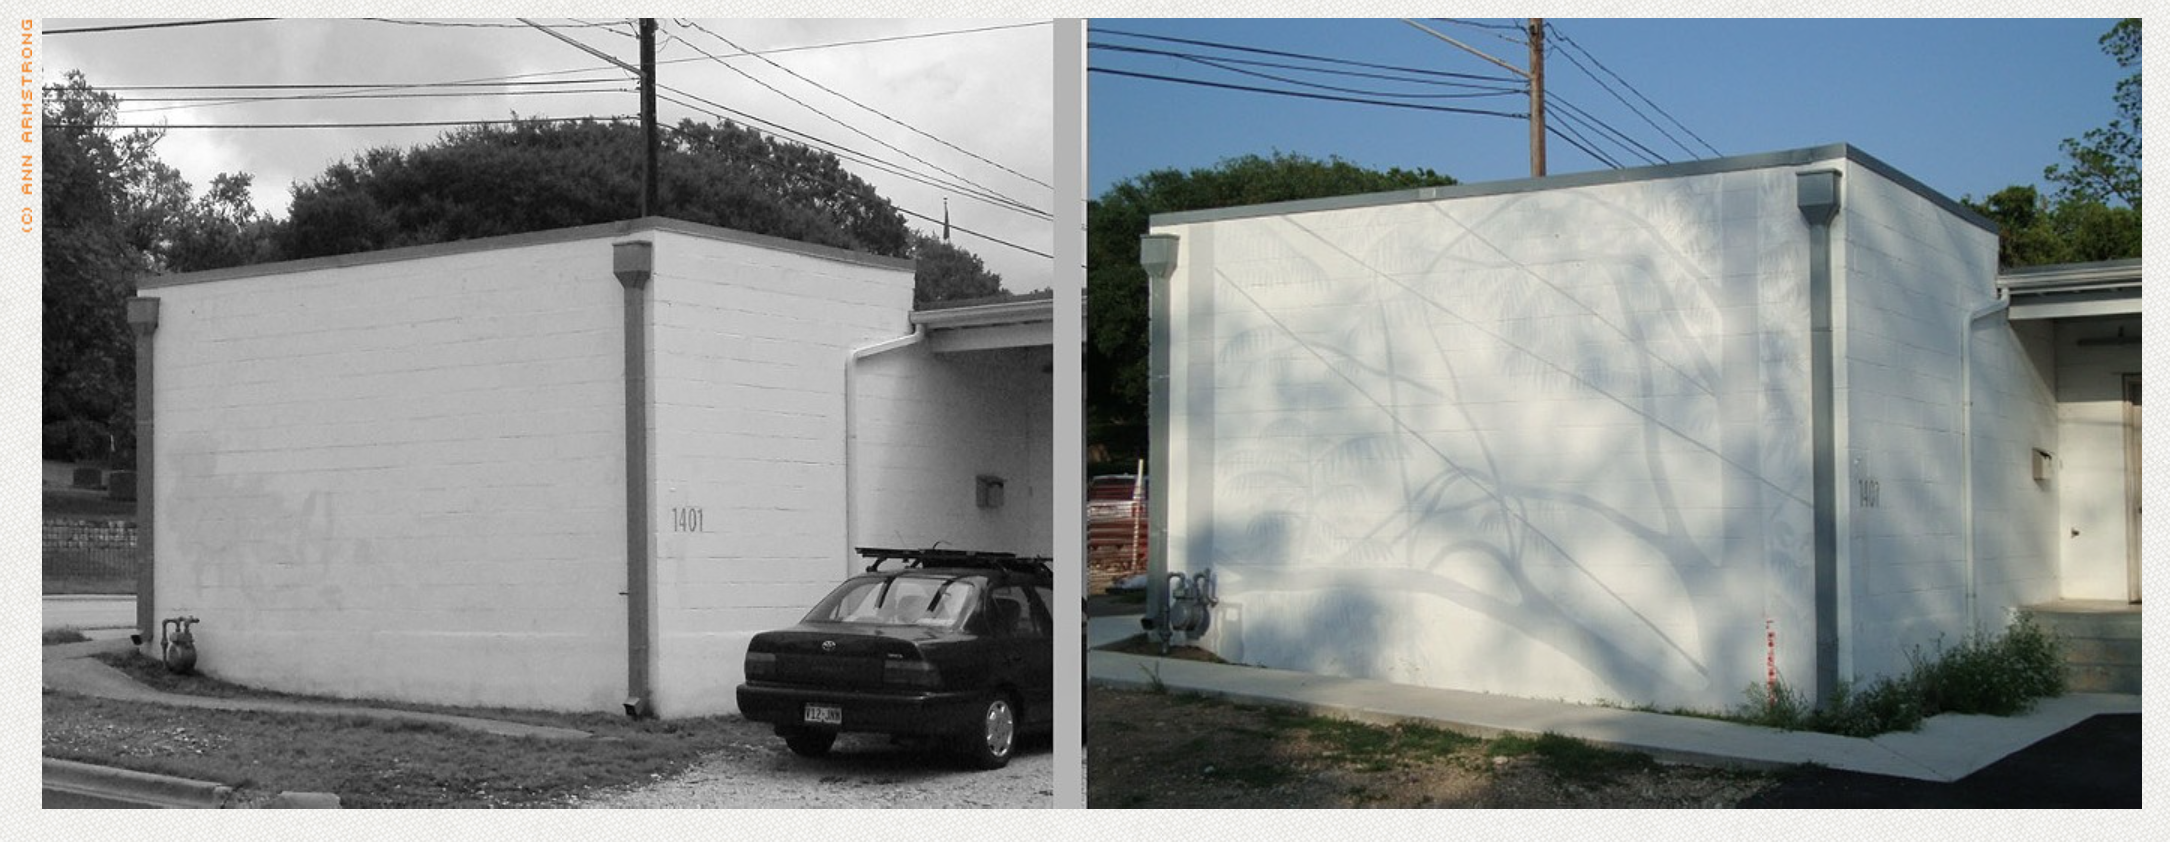 Shadow Mural @1402 East 7th, 2009-2016, Not a bad run for something that was meant to be temporary.